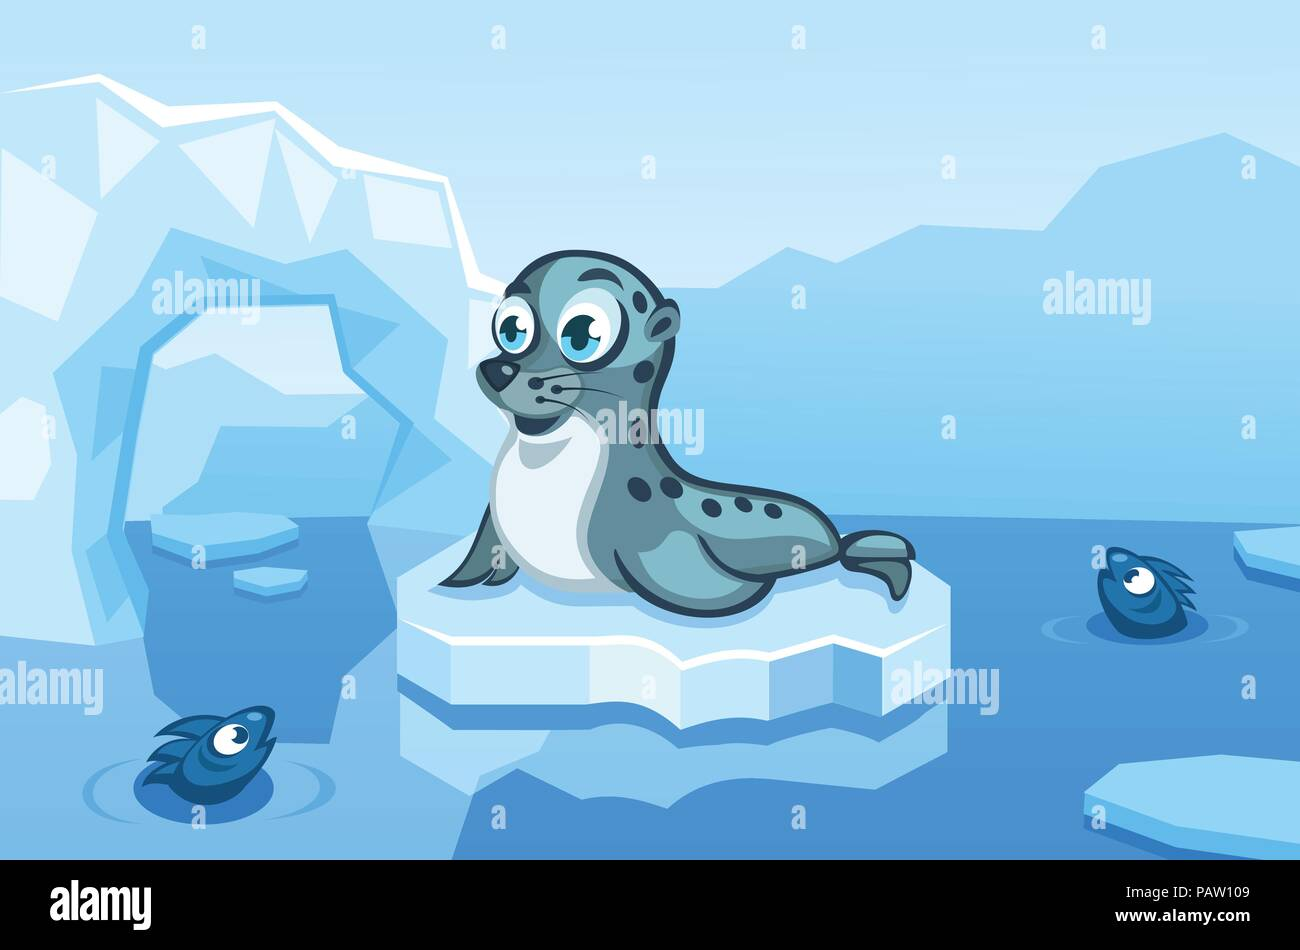 Illustration of a navy seal on an arctic vector background with ice floes, icebergs, water and fishes - Stock Vector